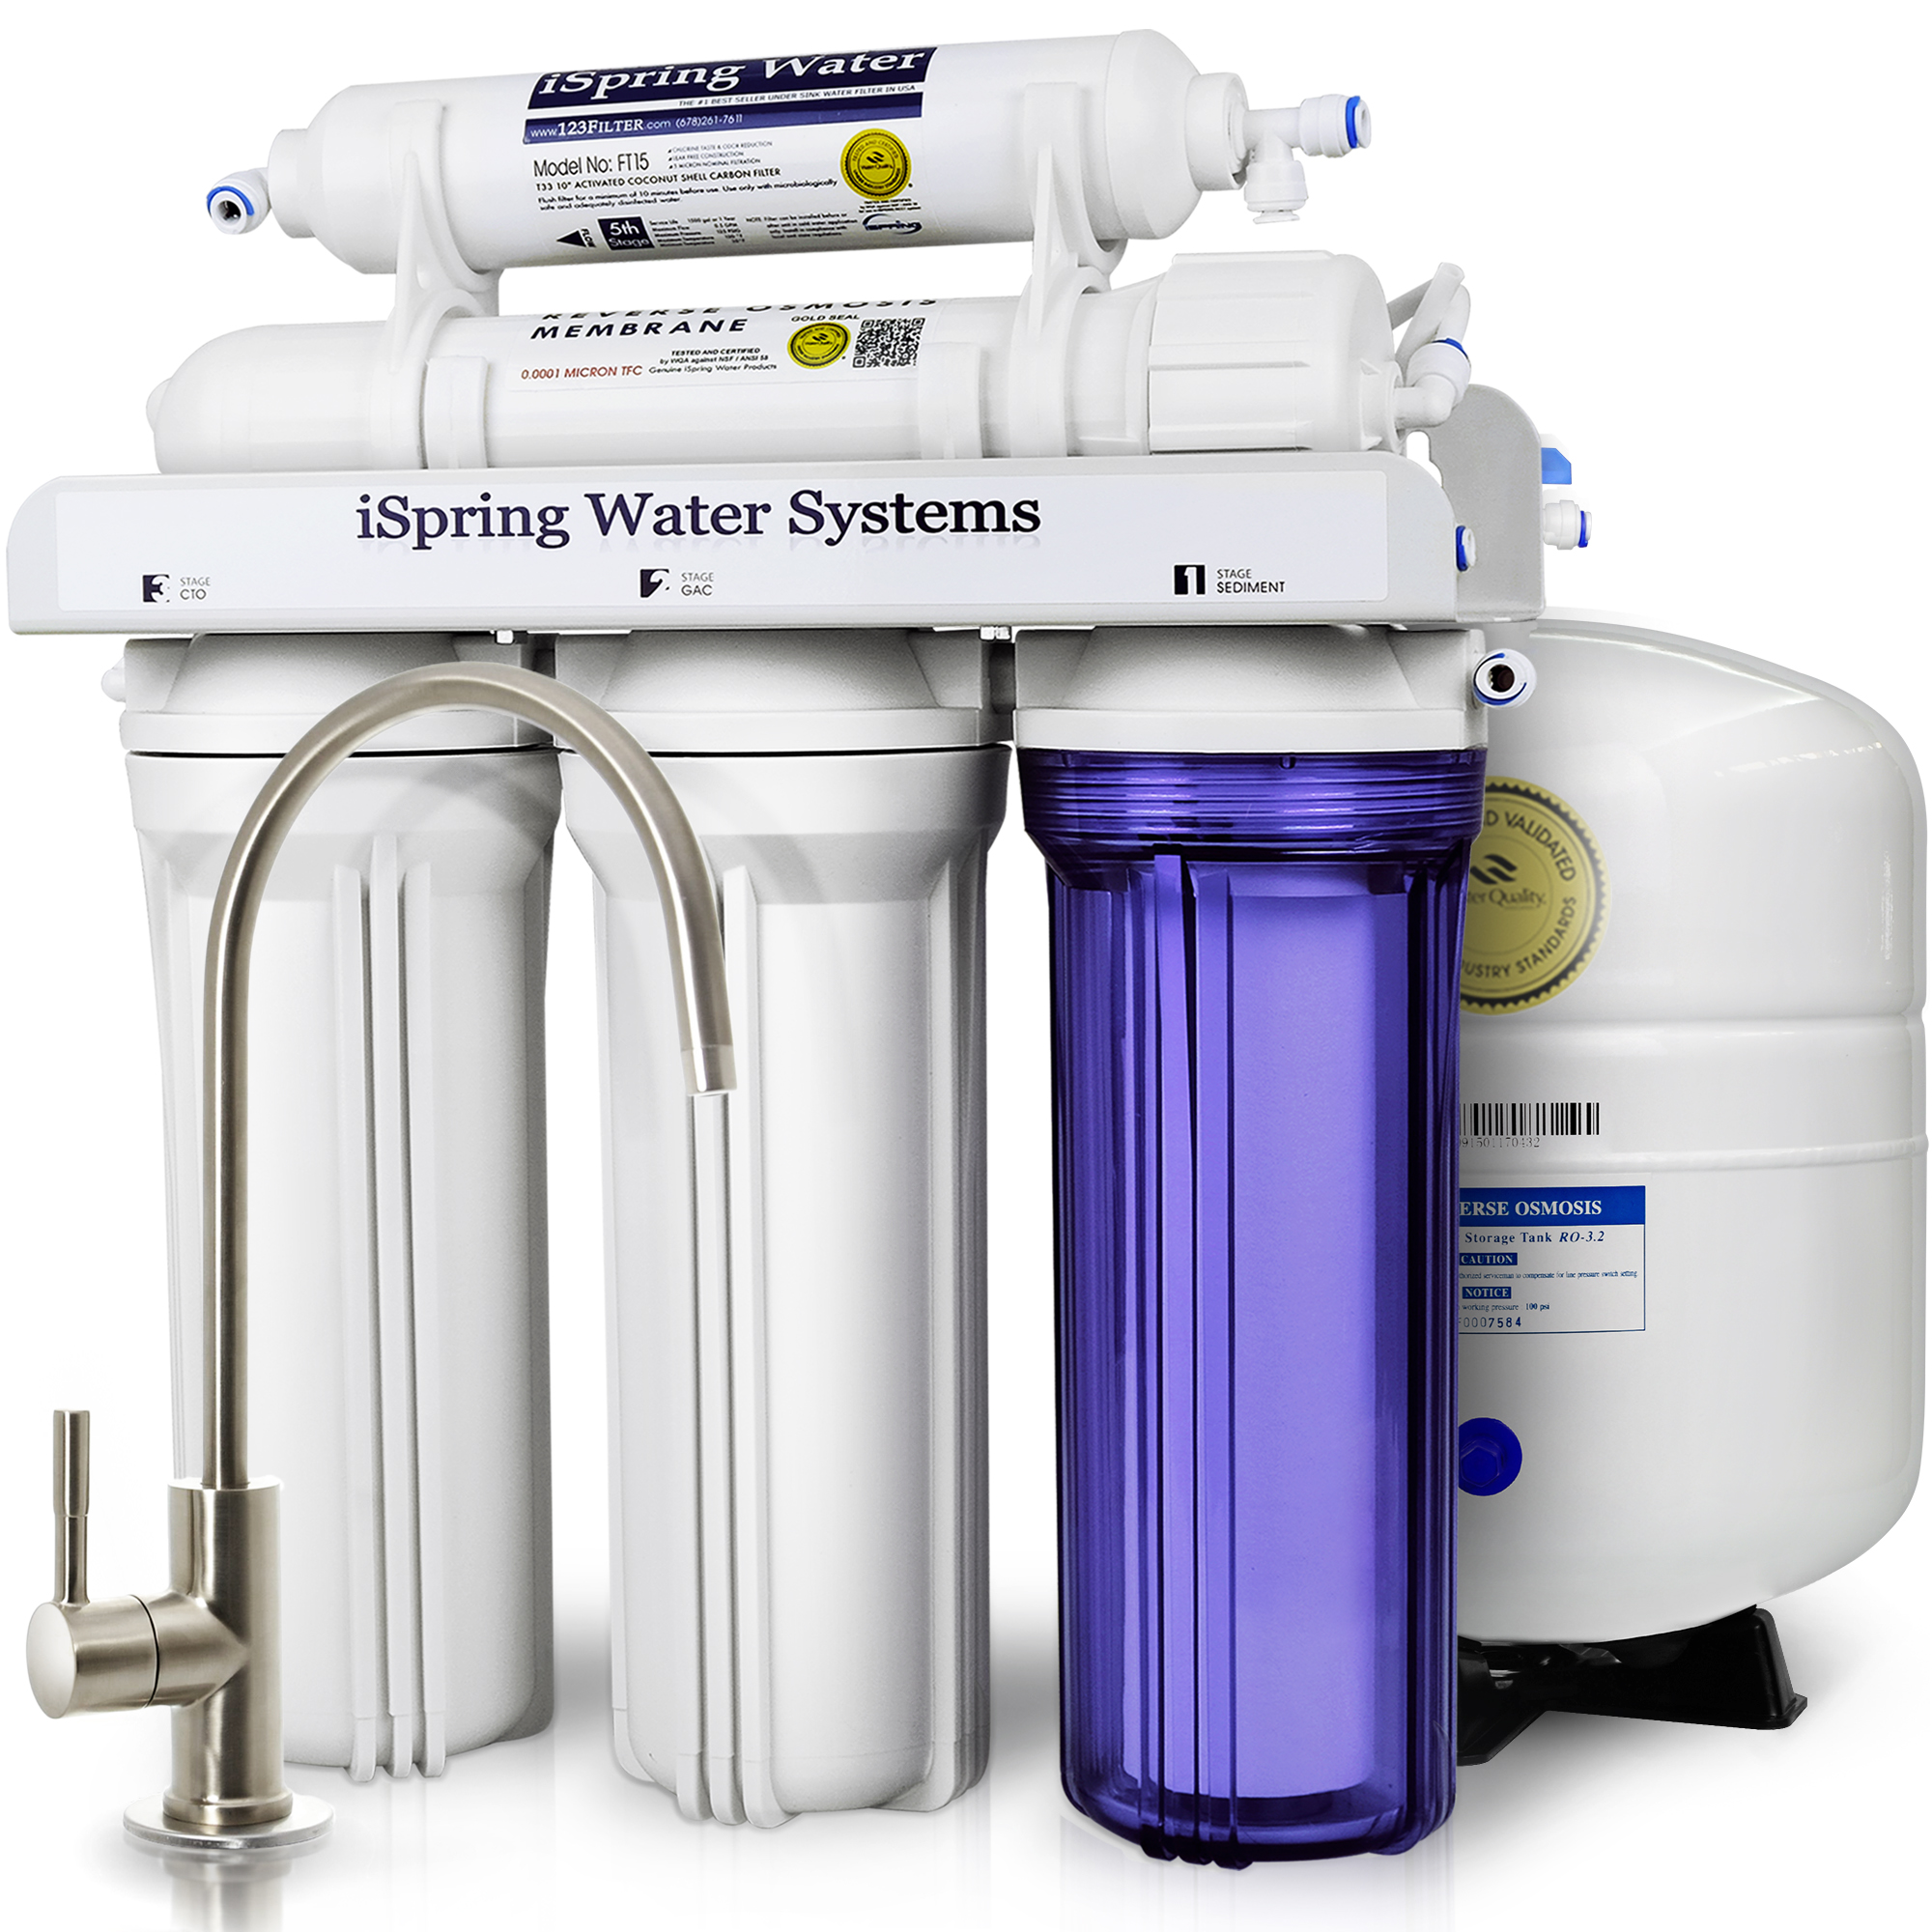 Water Filter System For Kitchen Sink Ispring reverse osmosis drinking water filter system 75gpd wqa ispring reverse osmosis drinking water filter system 75gpd wqa gold seal certified 5 stage rcc7 walmart workwithnaturefo